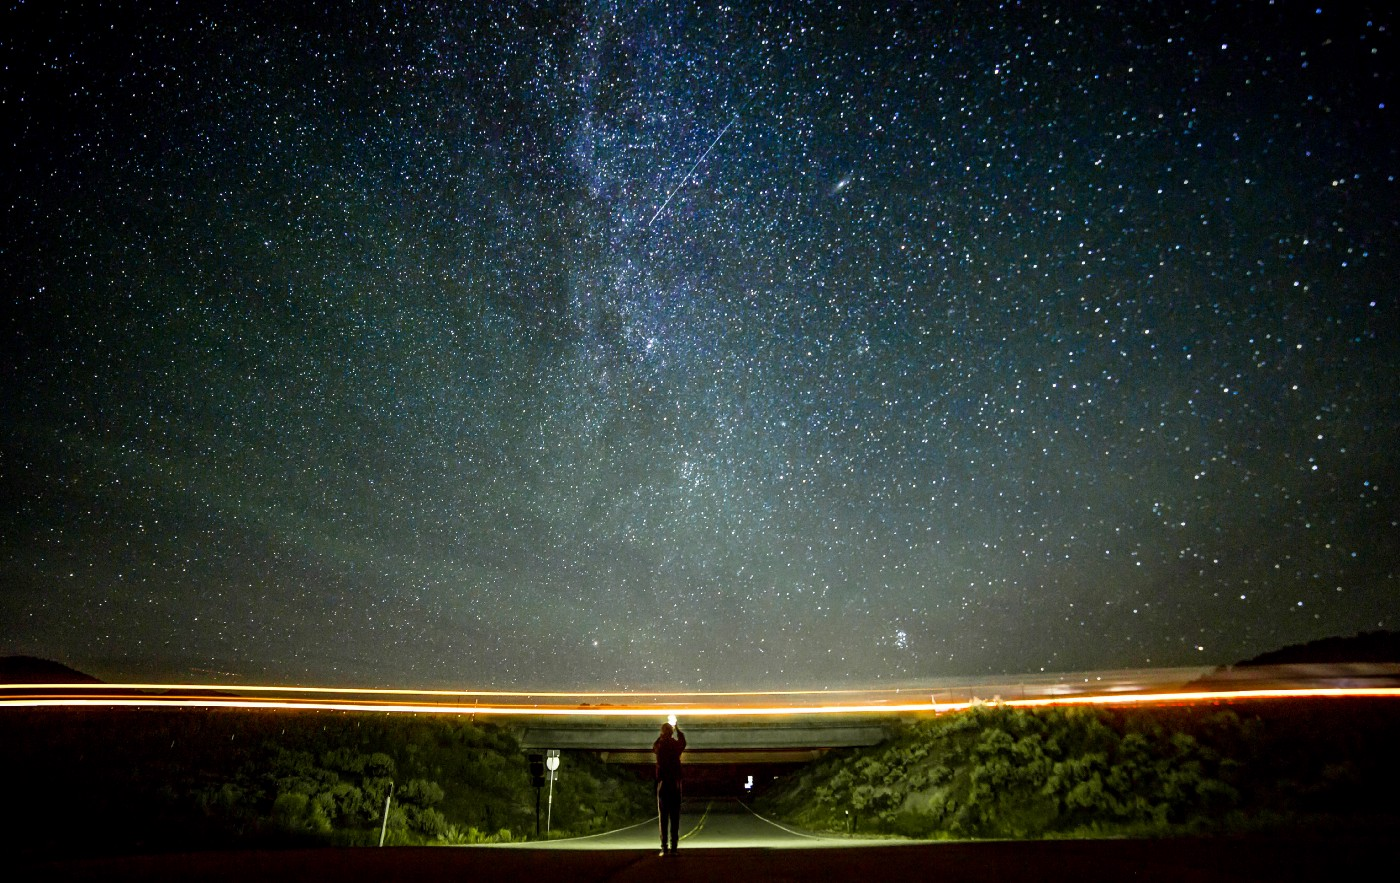 A wide shot of a person standing in the middle of an empty highway road at night. They are holding up a light in their hands as they are being shrouded by darkness. The majority of the scene is taken up by a deep night sky, coloured blue by a blanket of dazzling stars and an orange stripe of sunset above the shrubs that line the road. A shooting star is visible directly above them. Our writing can be more interesting than our boring lives. Rambling Rose. Tim Denning.